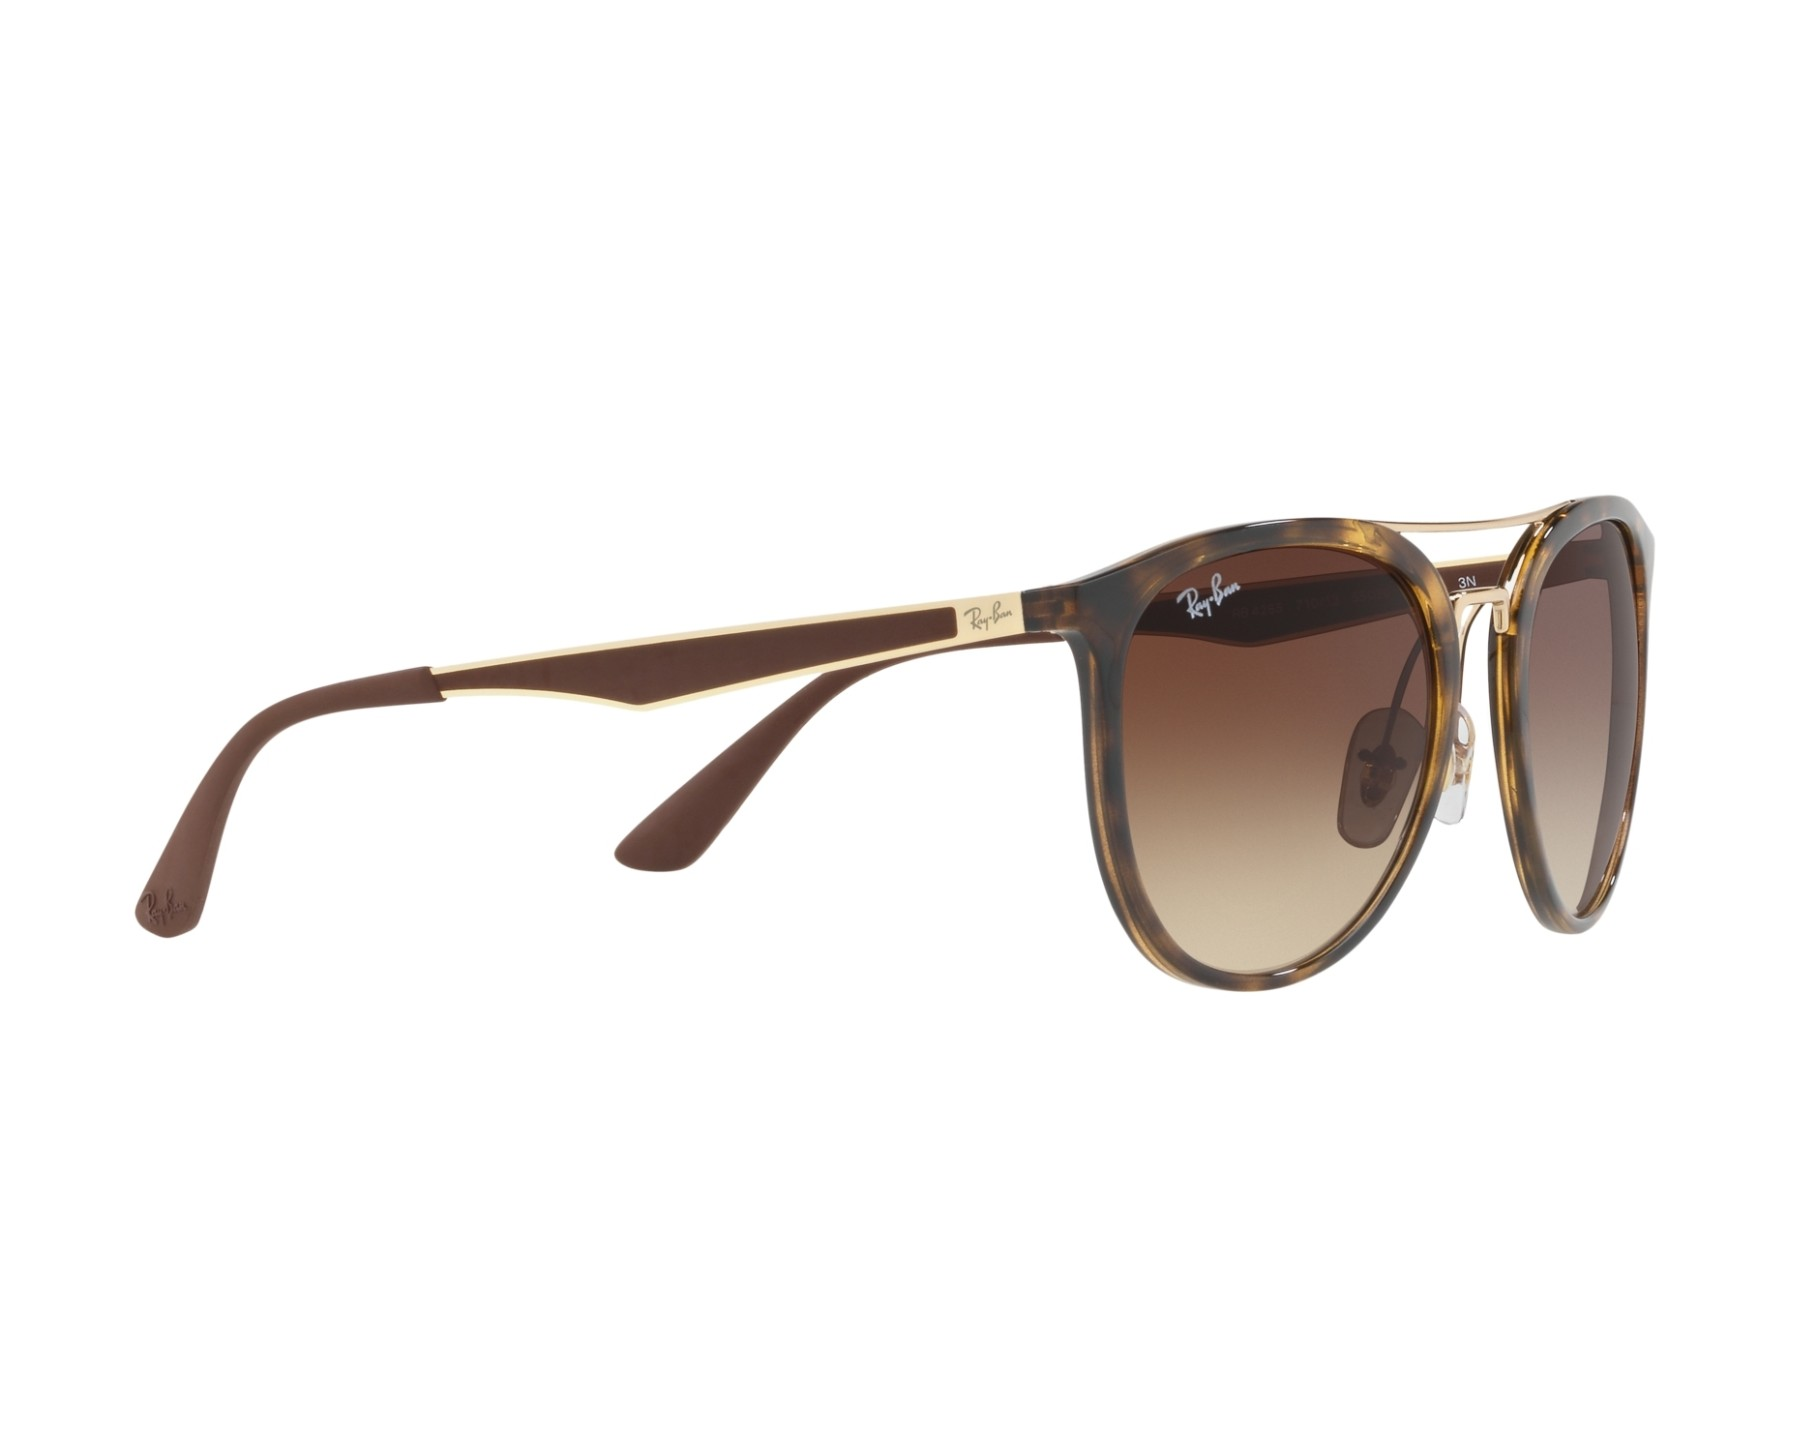 44e295f370 Sunglasses Ray-Ban RB-4285 710 13 - Havana Gold 360 degree view